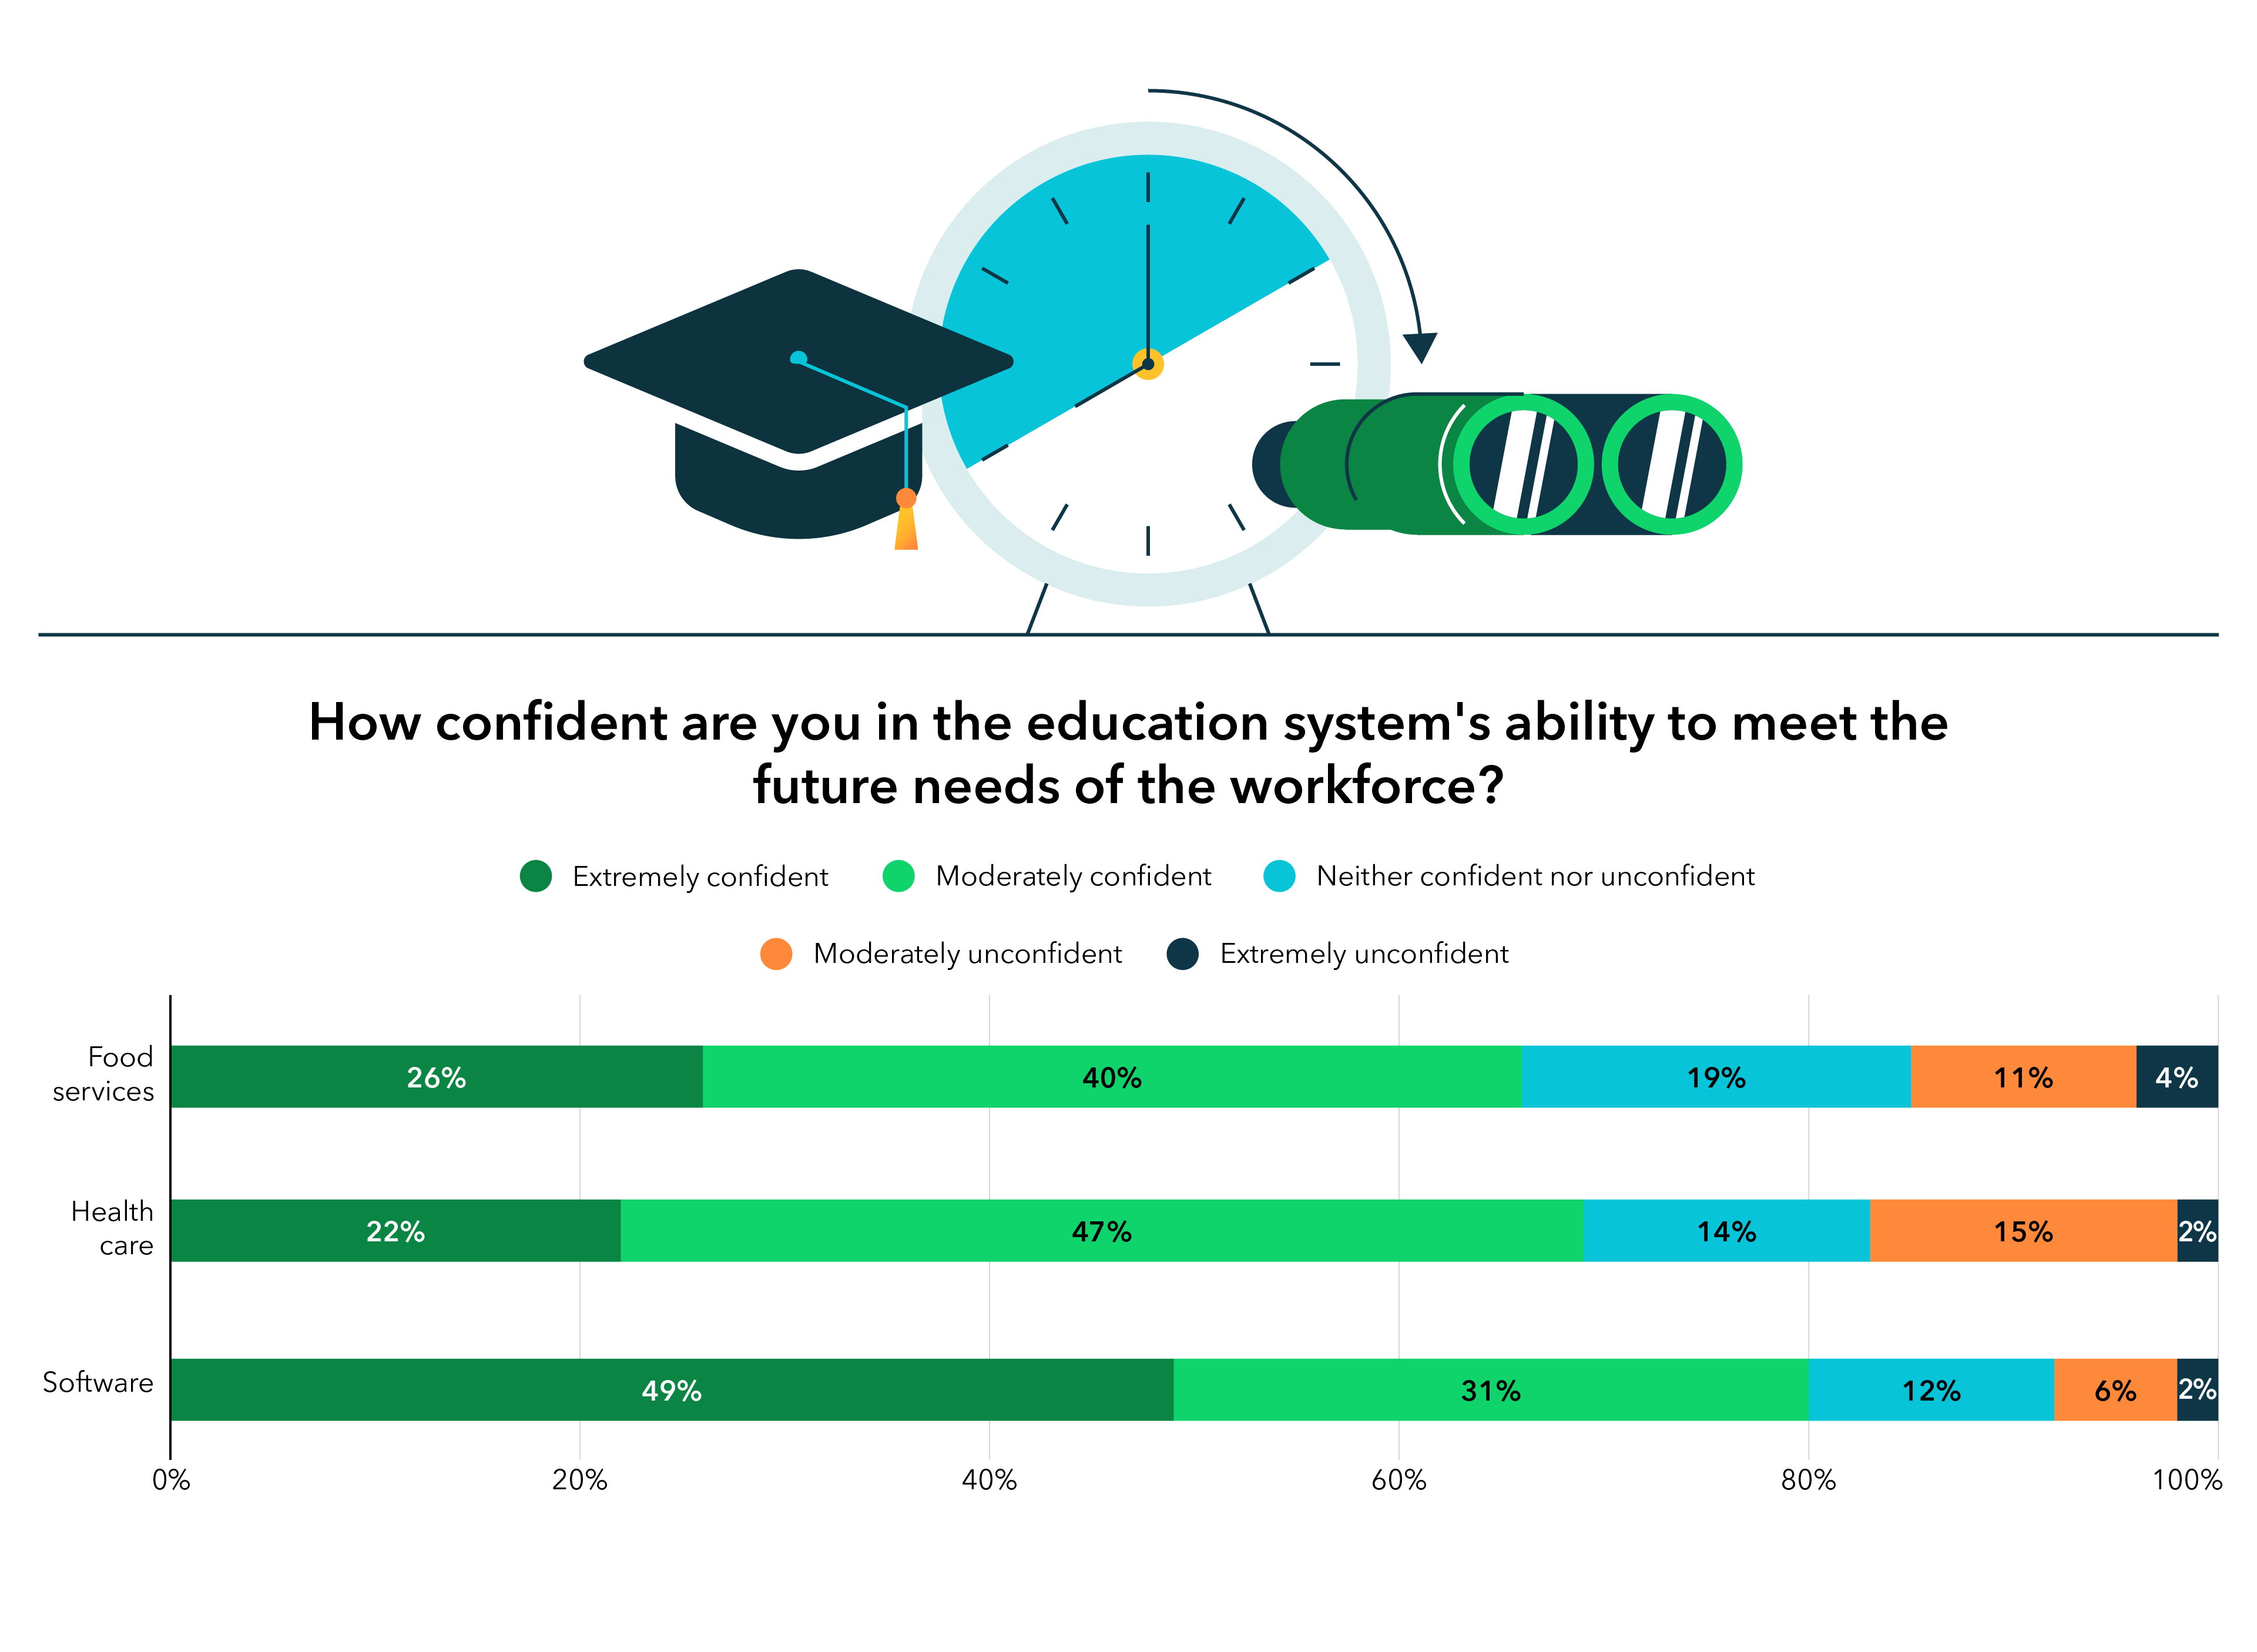 Graphic: How confident are you in the education system's ability to meet the future needs of the workforce?